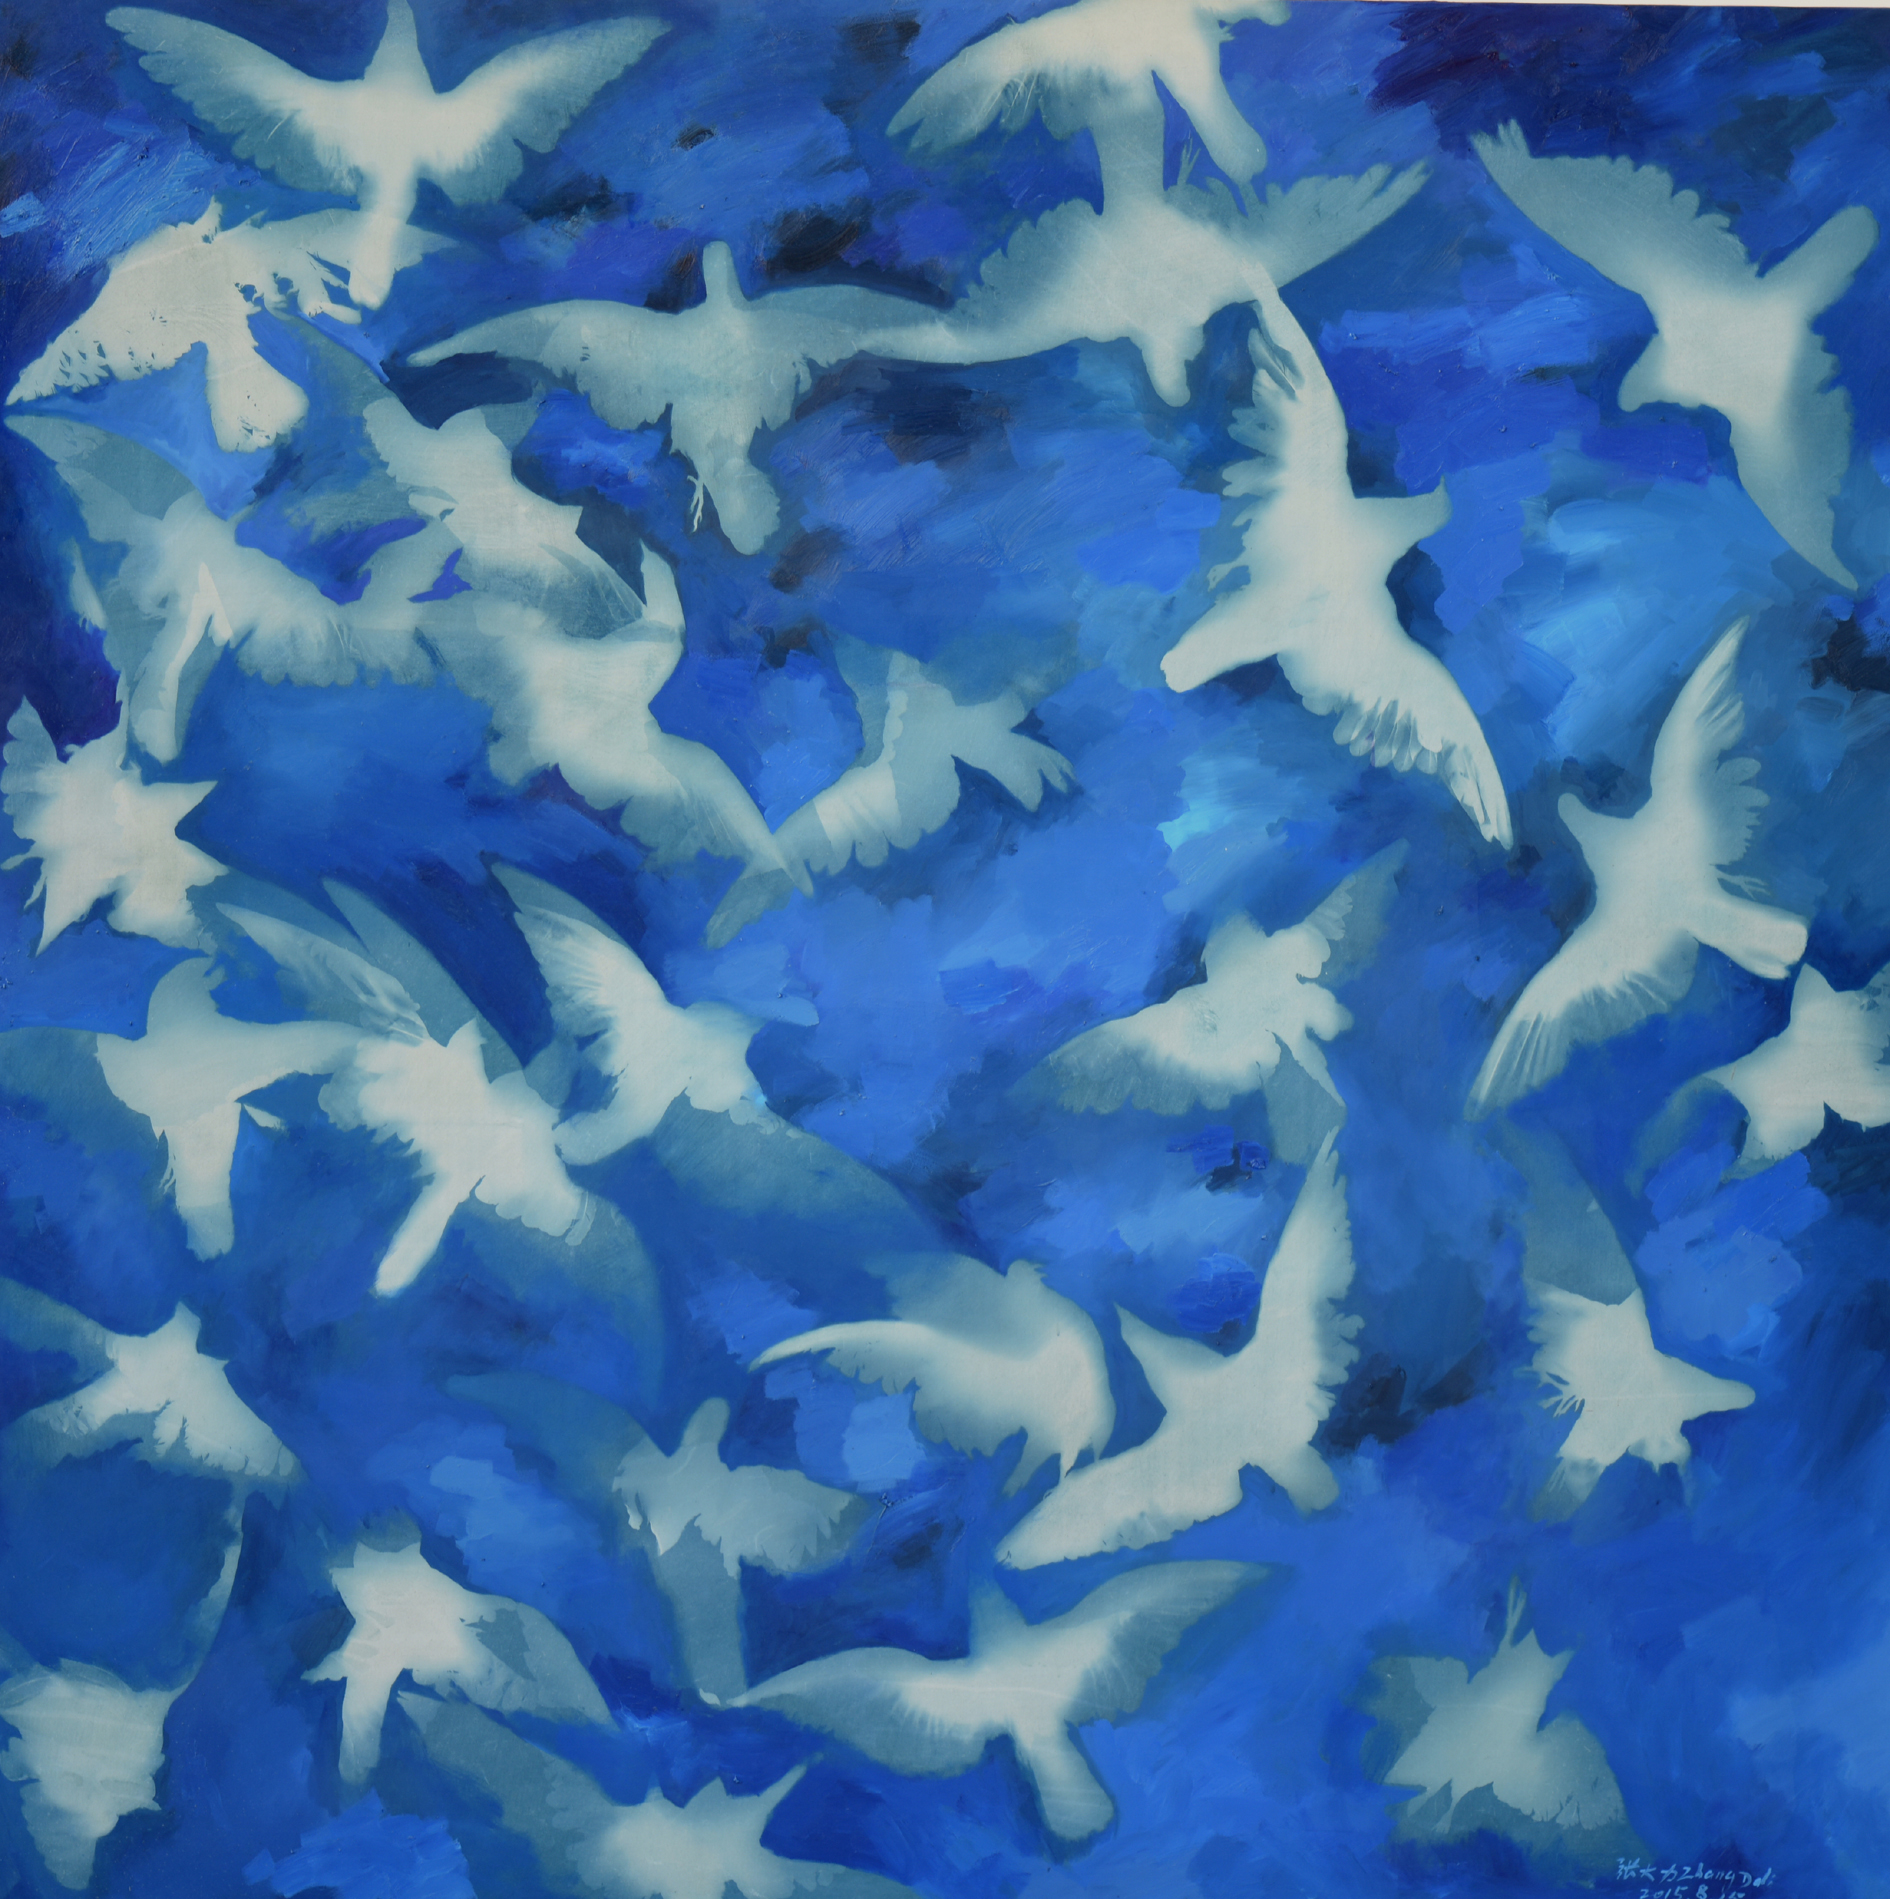 Blue Blue Sky, Cyanotype and Oil on Canvas, 197 x 197 cm, 2015   Photo Copyright Artist Zhang Dali and Courtesy of Pékin Fine Arts